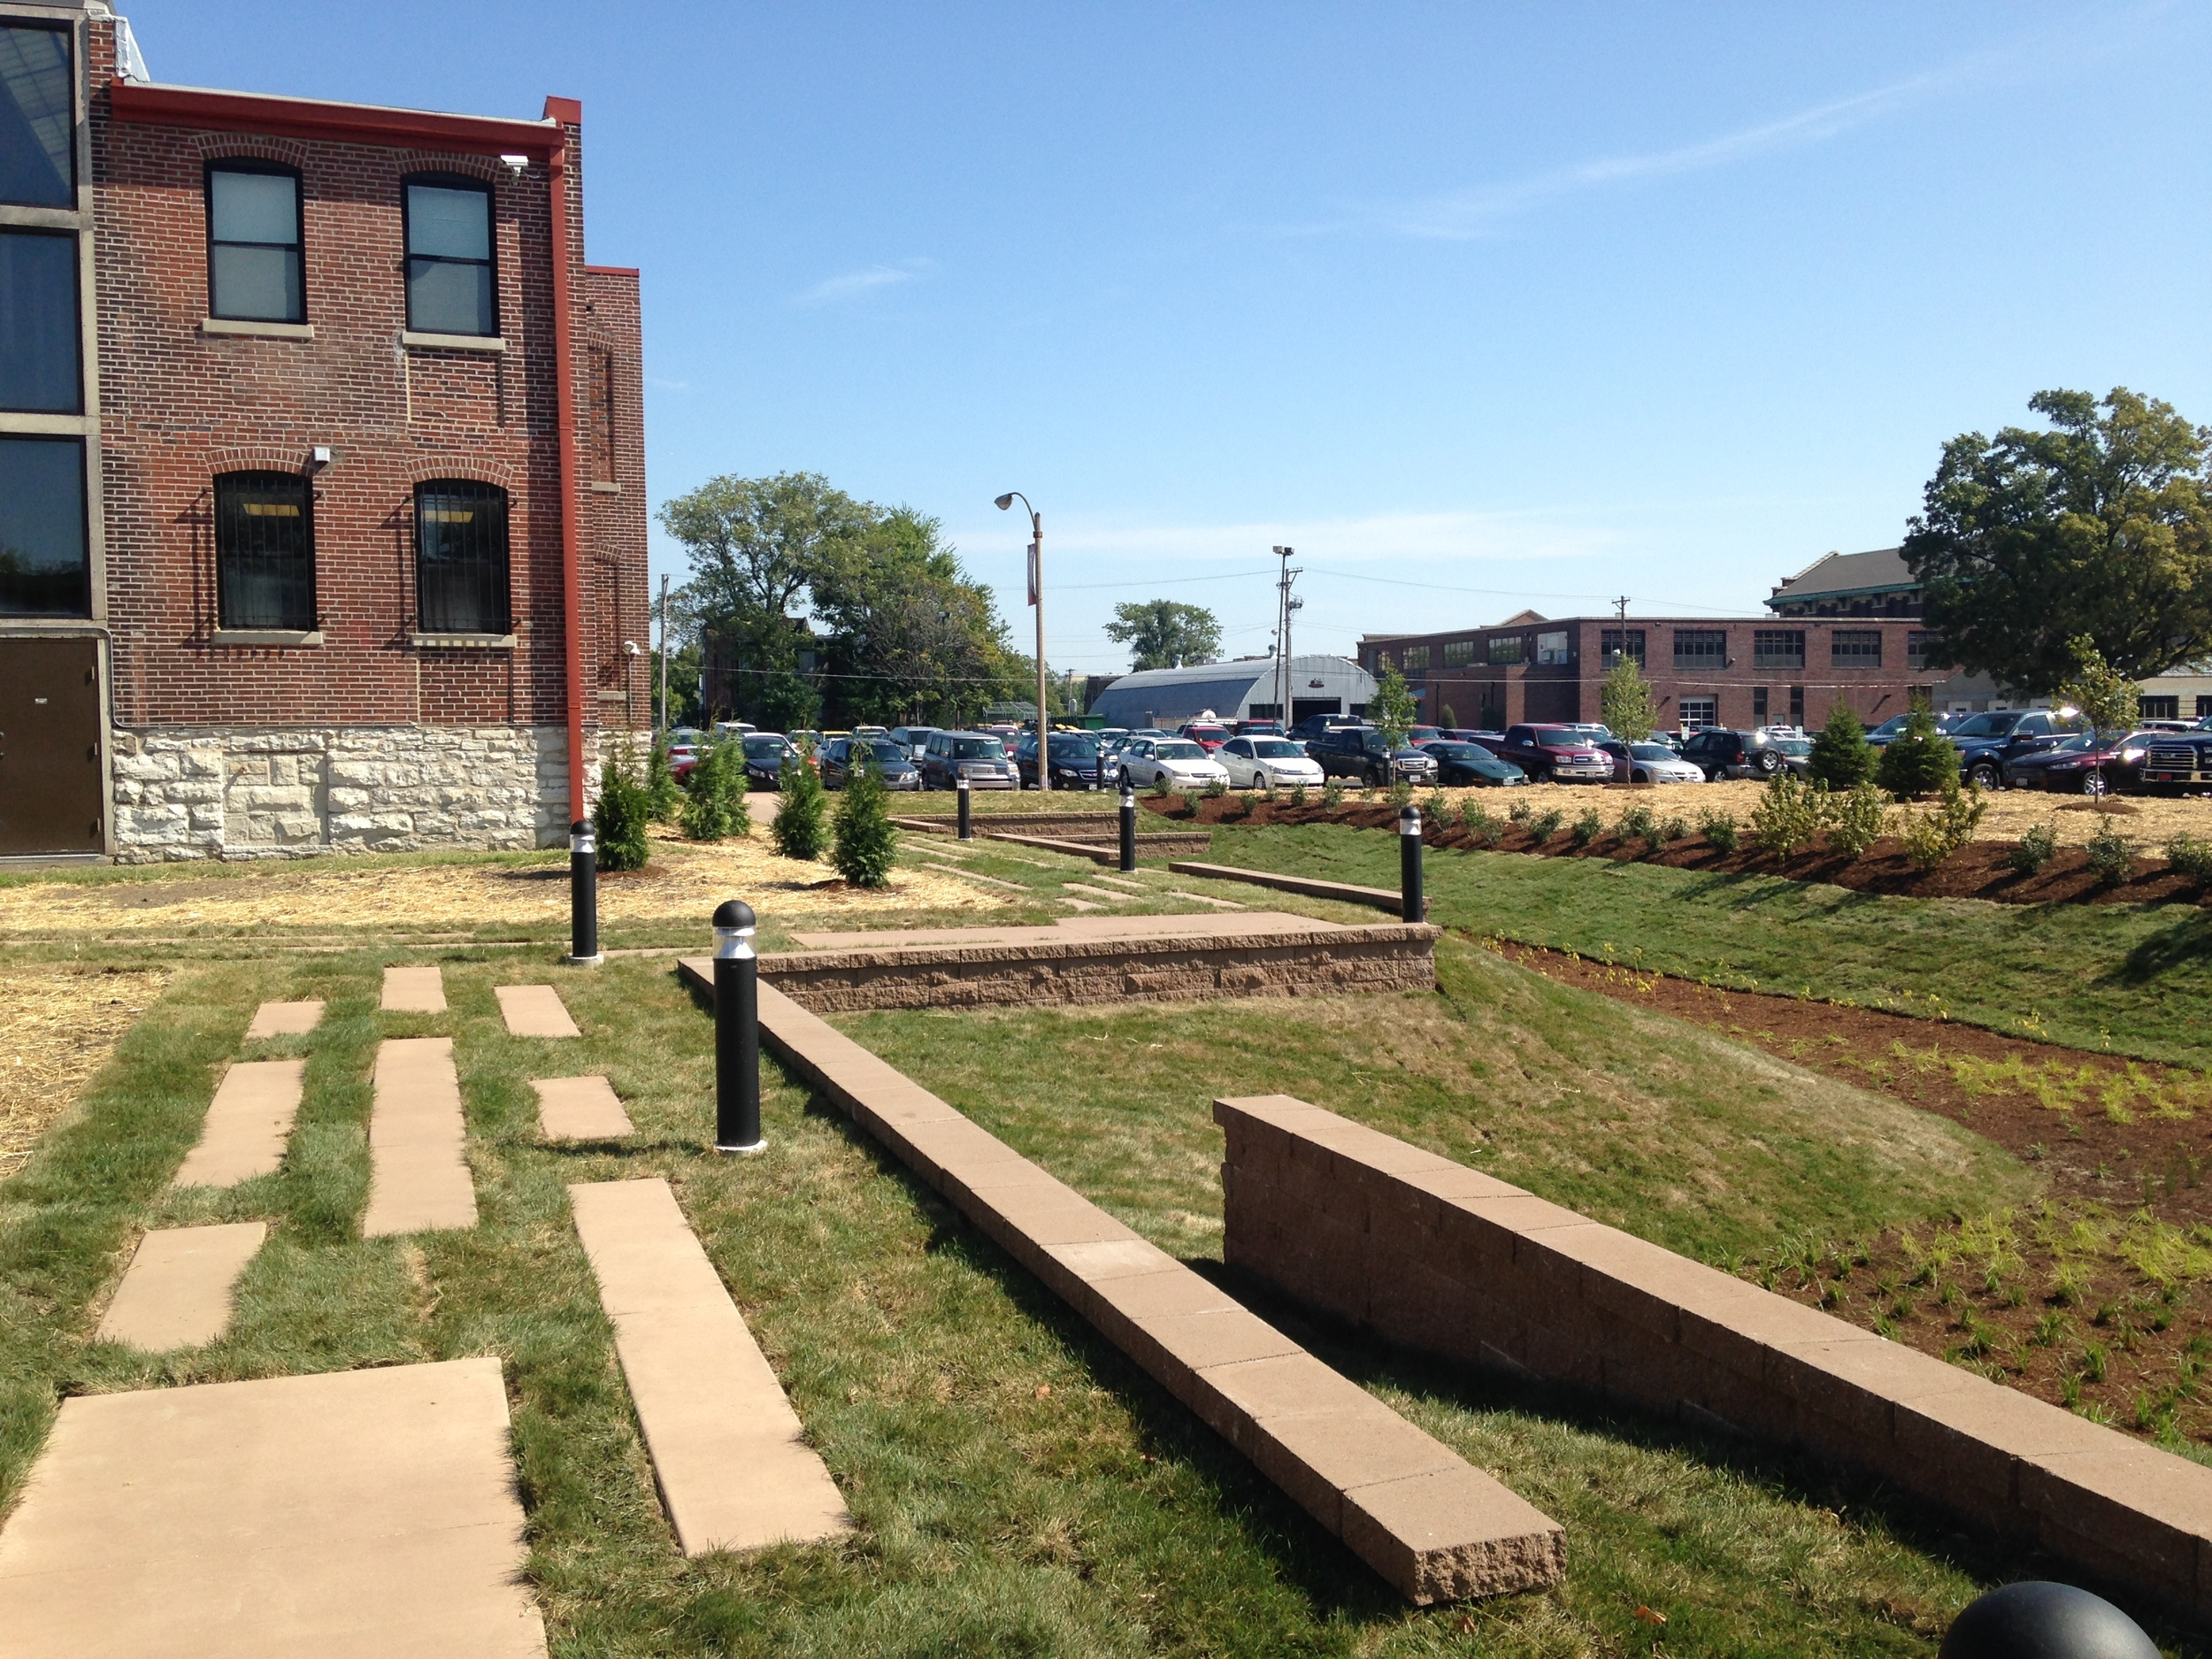 A new rain garden acts as a terminus for Ranken's mall in the St. Louis campus -